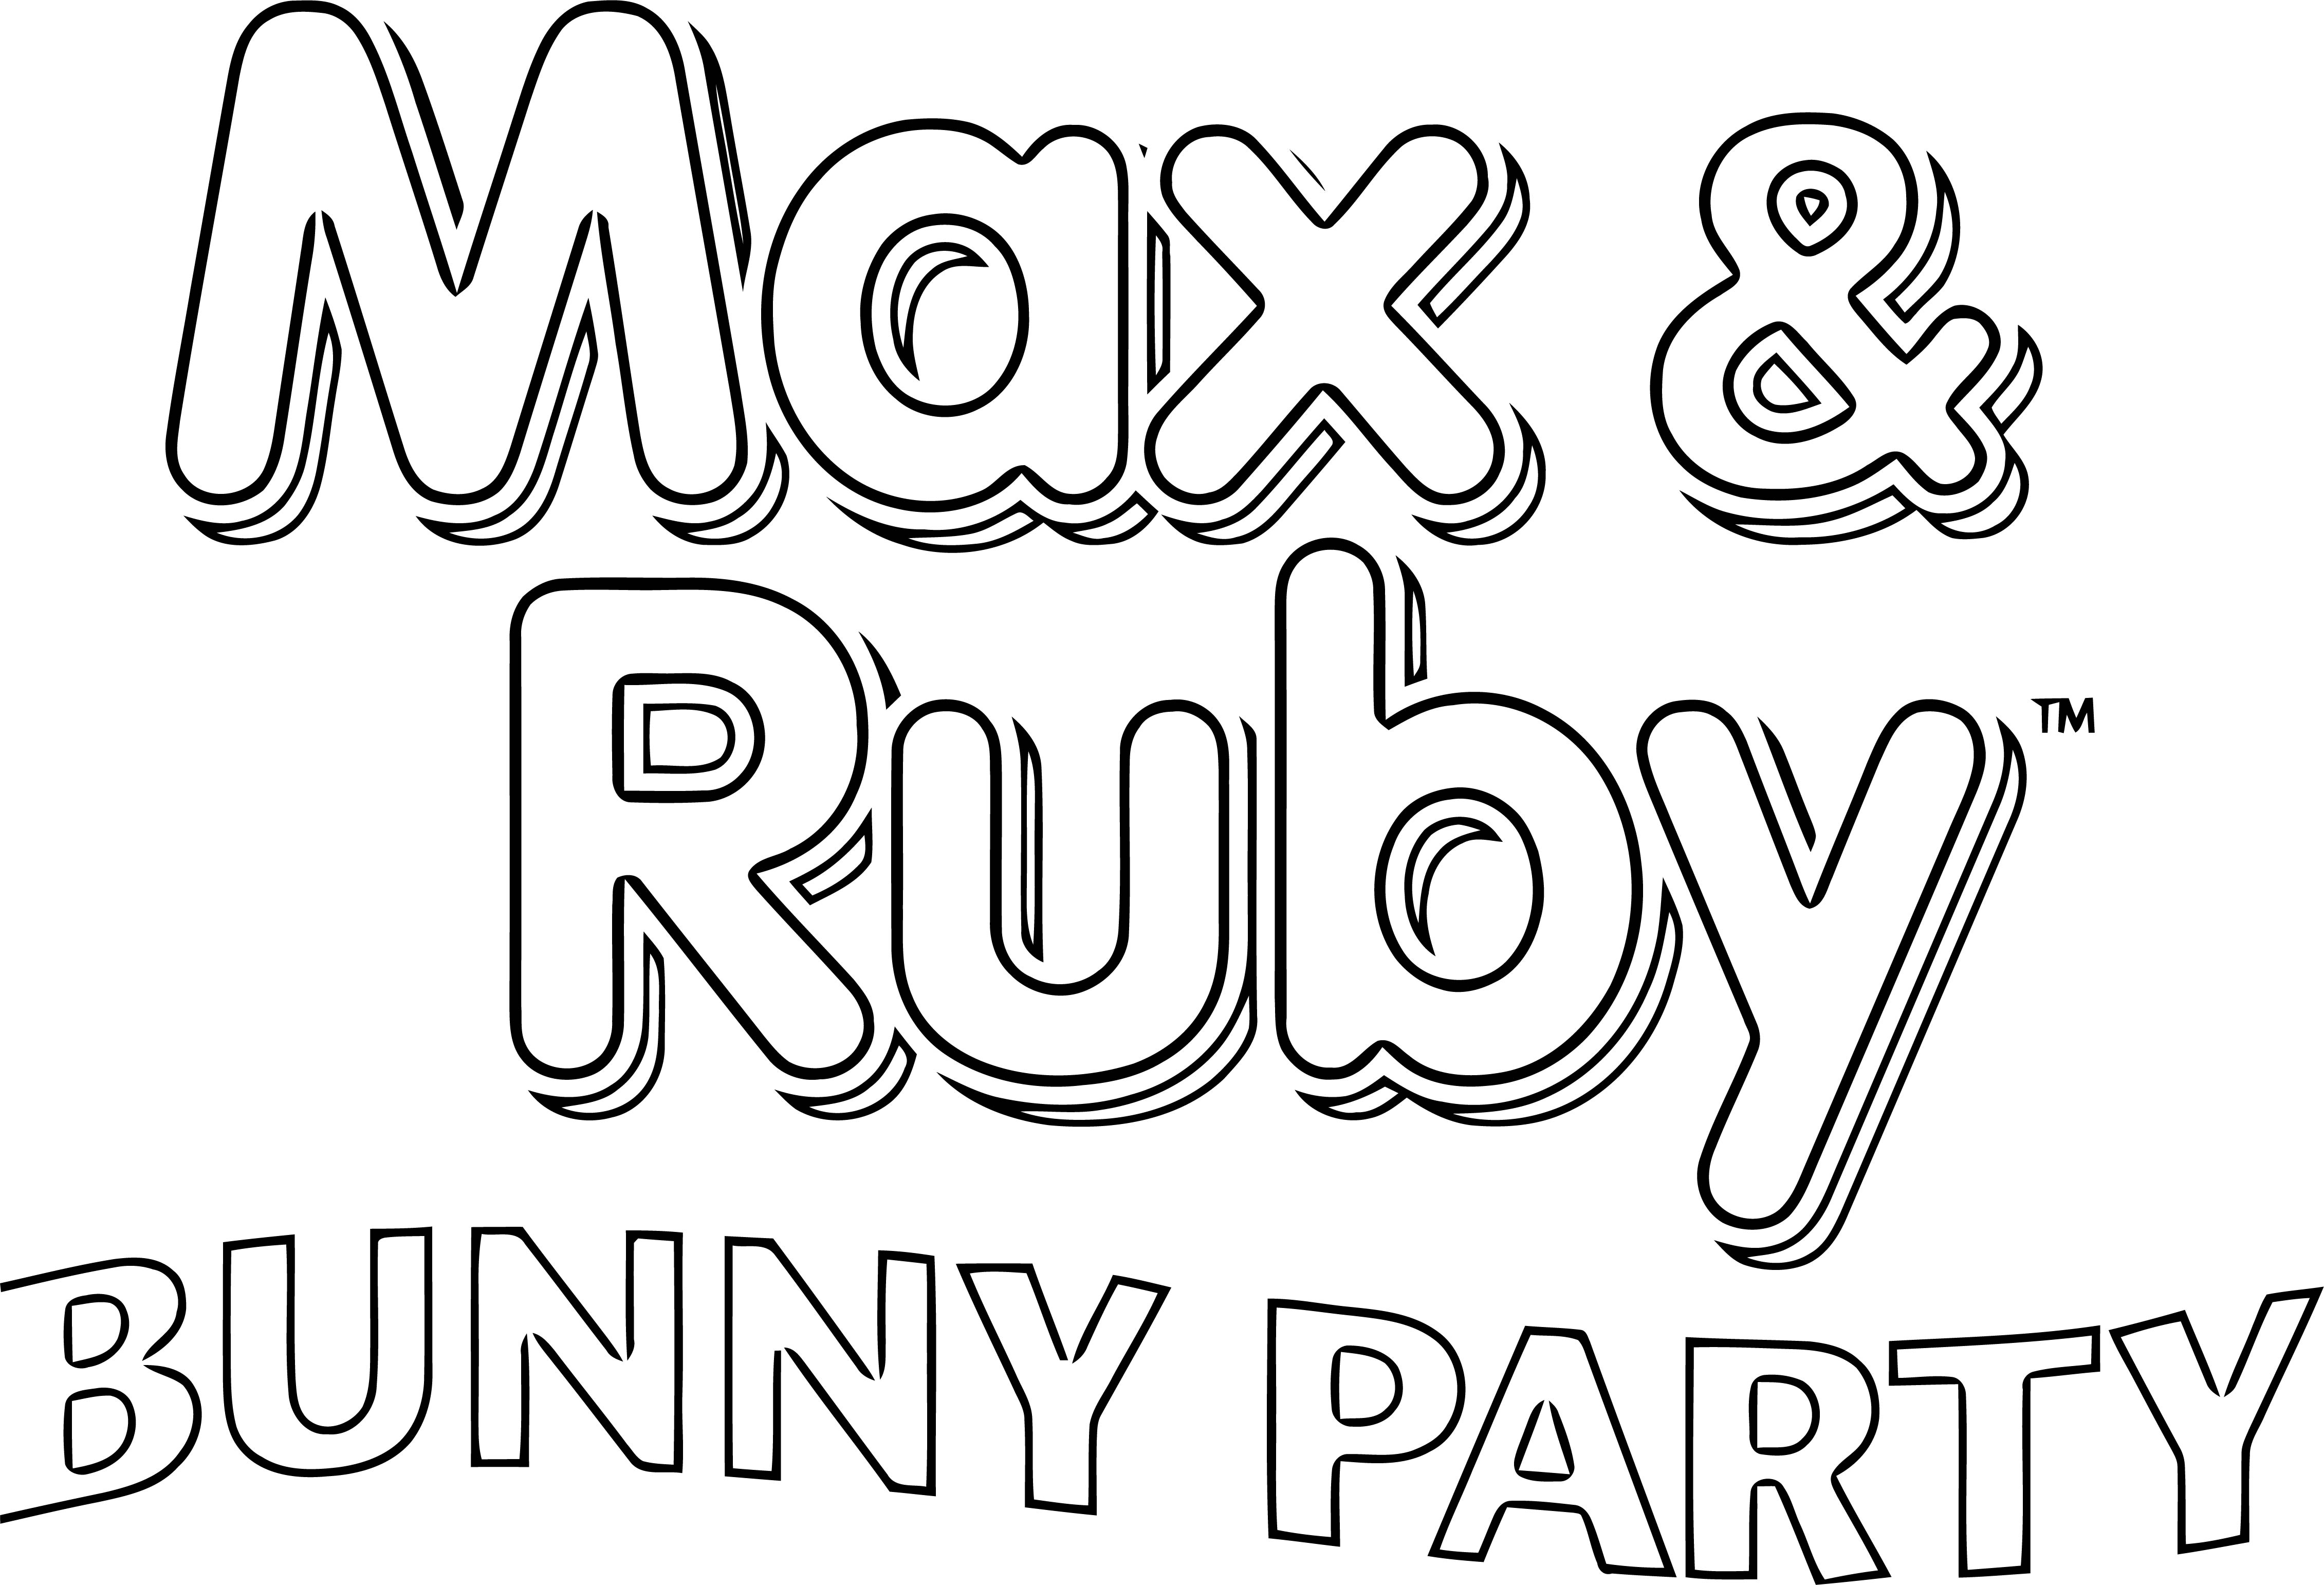 Max Ruby Bunny Party Logo Max And Ruby Text Coloring Page